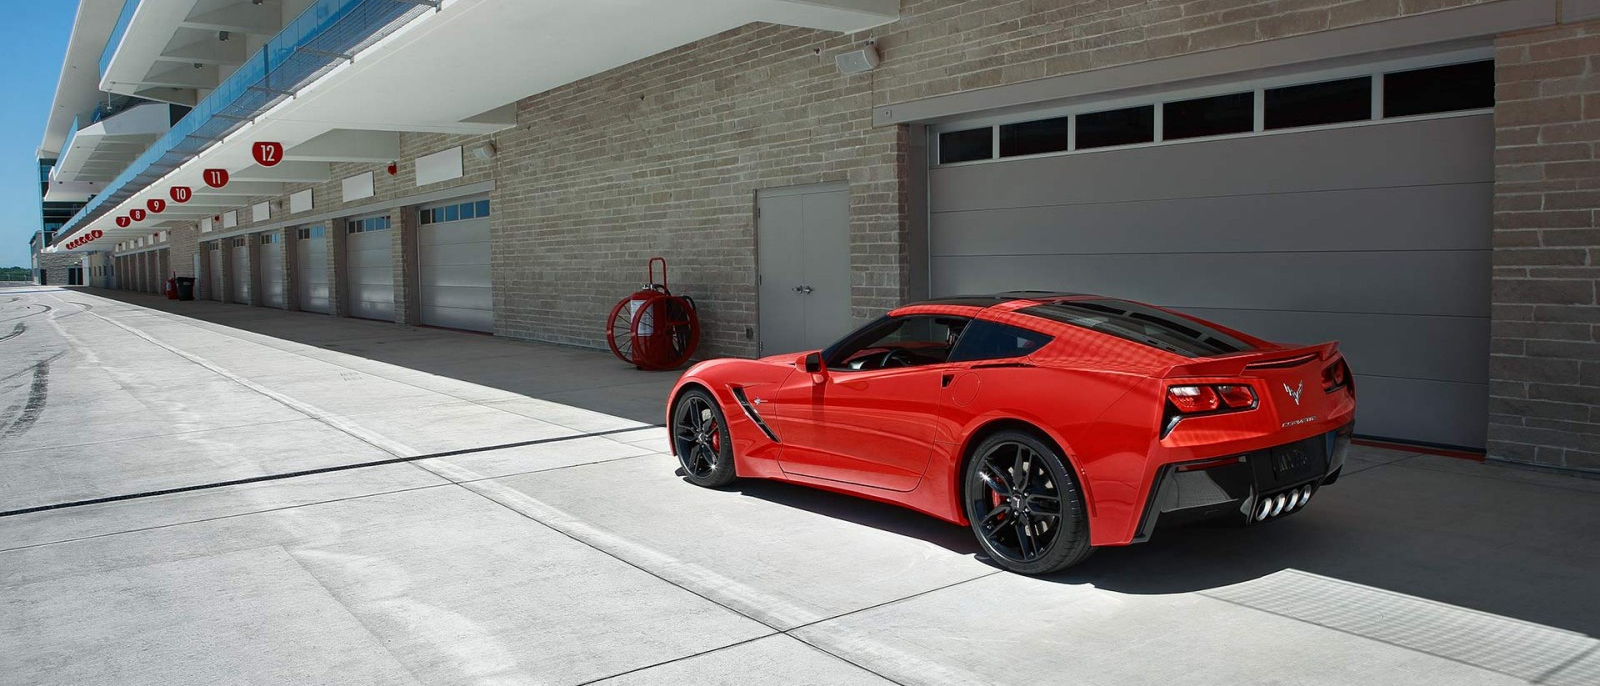 2017 Corvette Stingray red